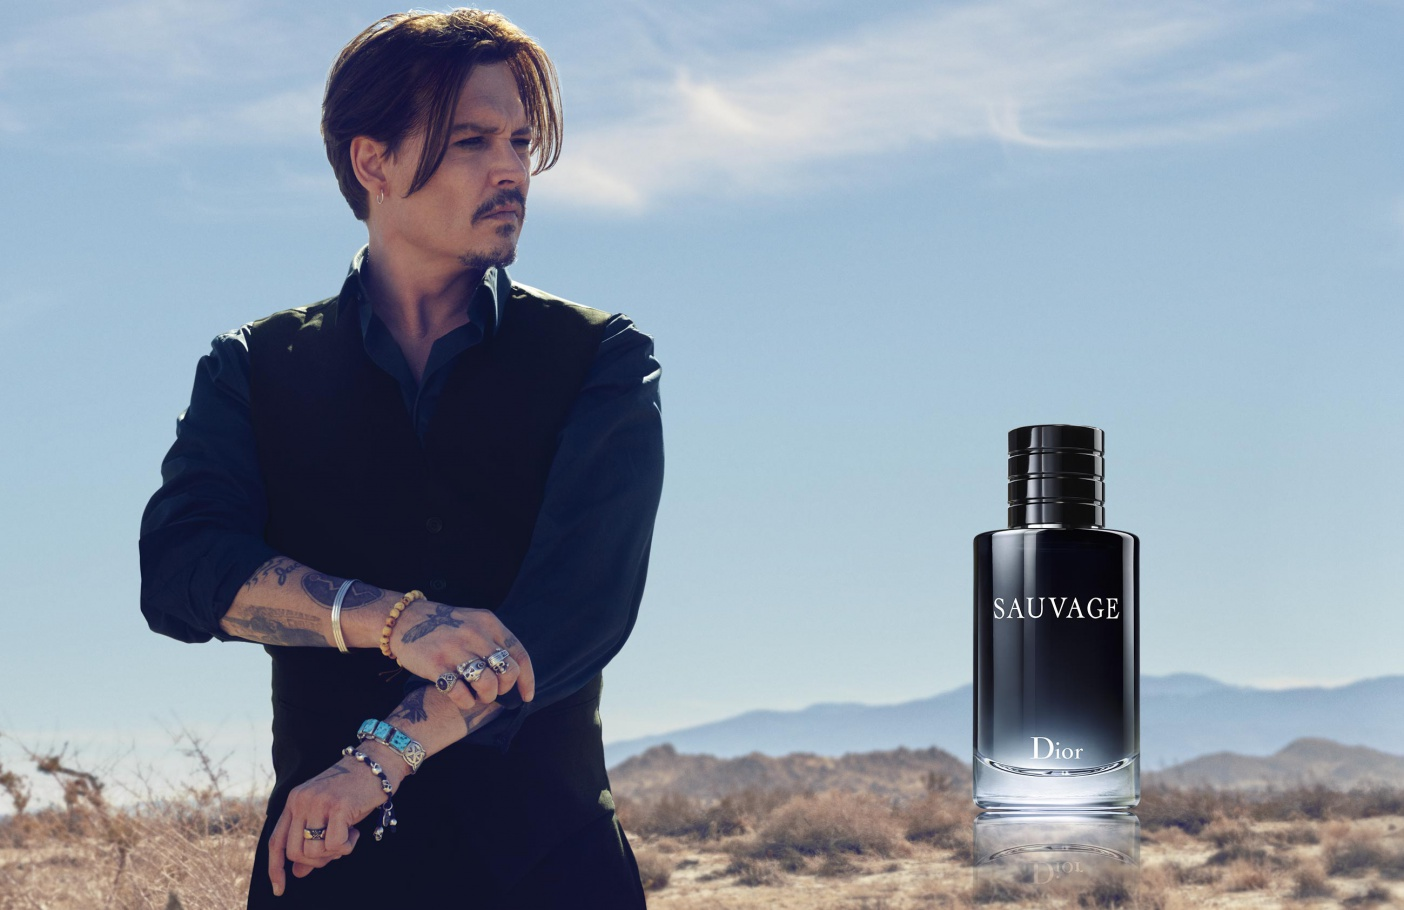 Johnny Depp - Dior Sauvage kampaň